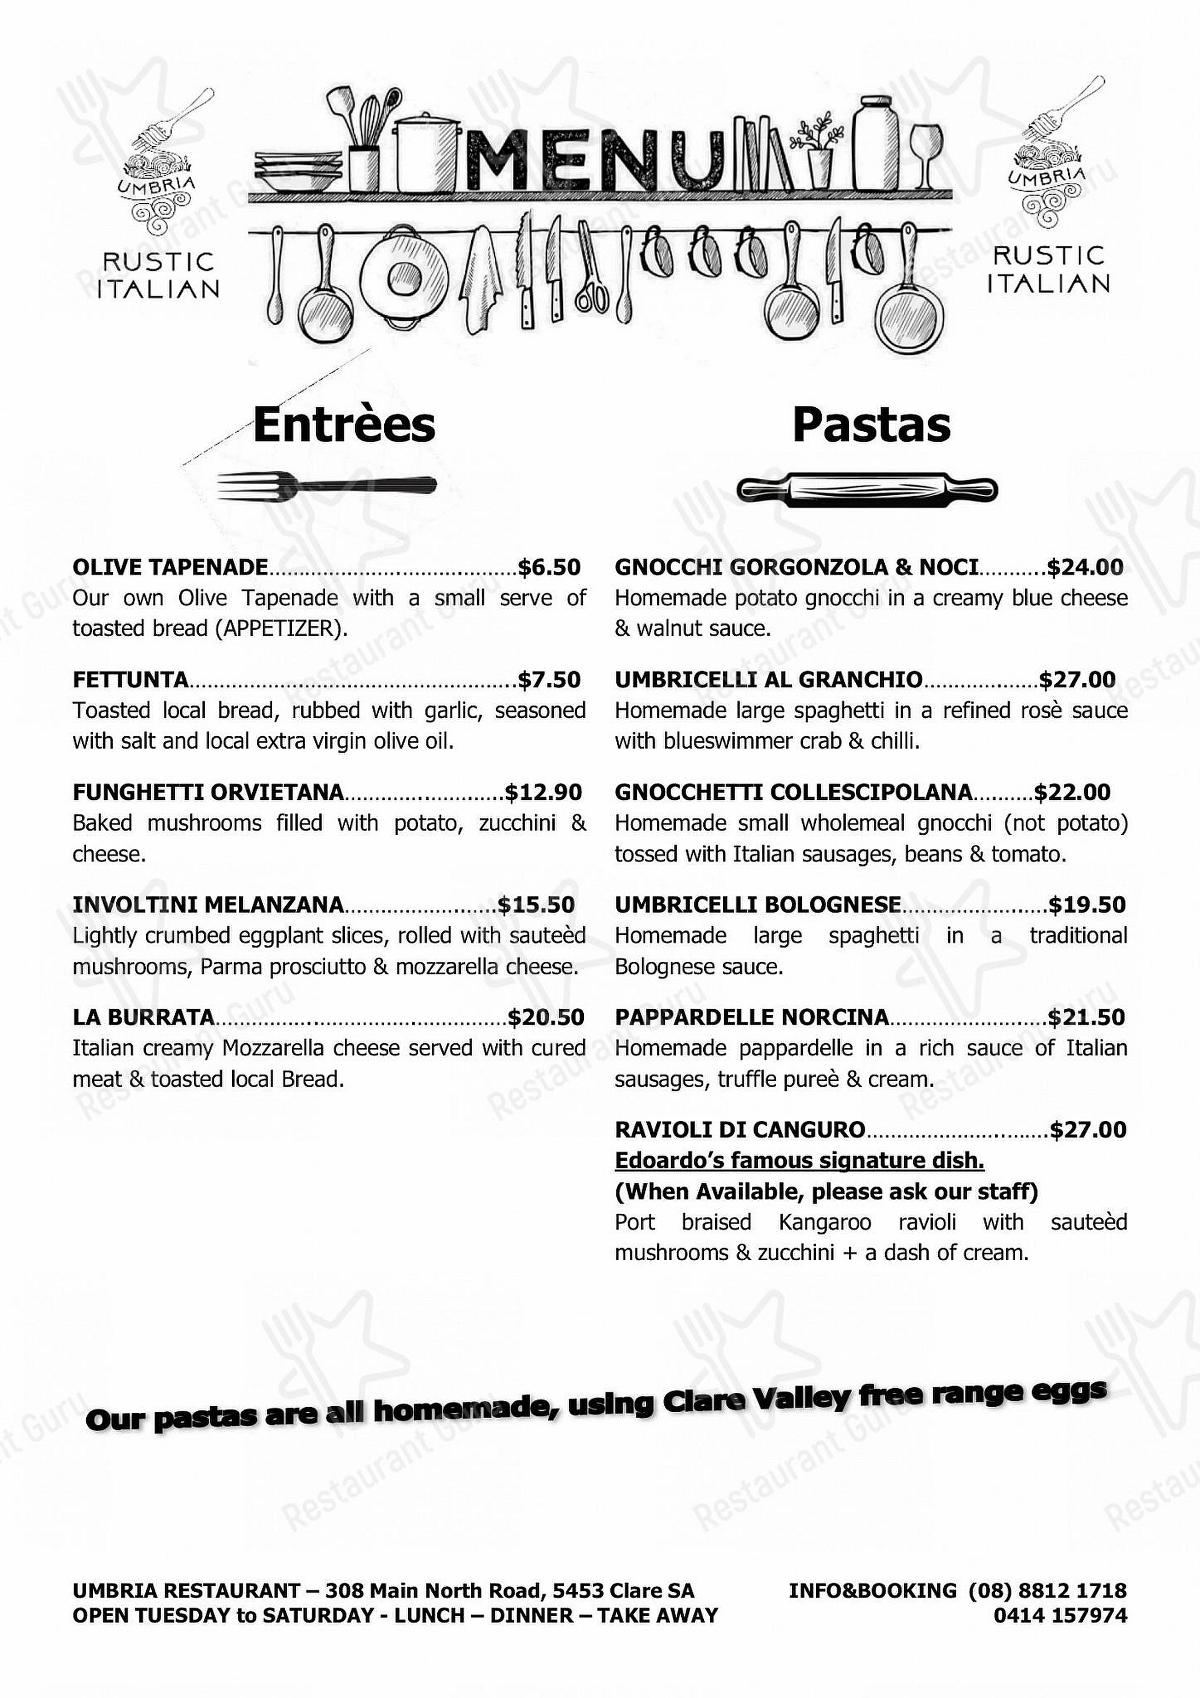 Check out the menu for UMBRIA Rustic Italian Restaurant